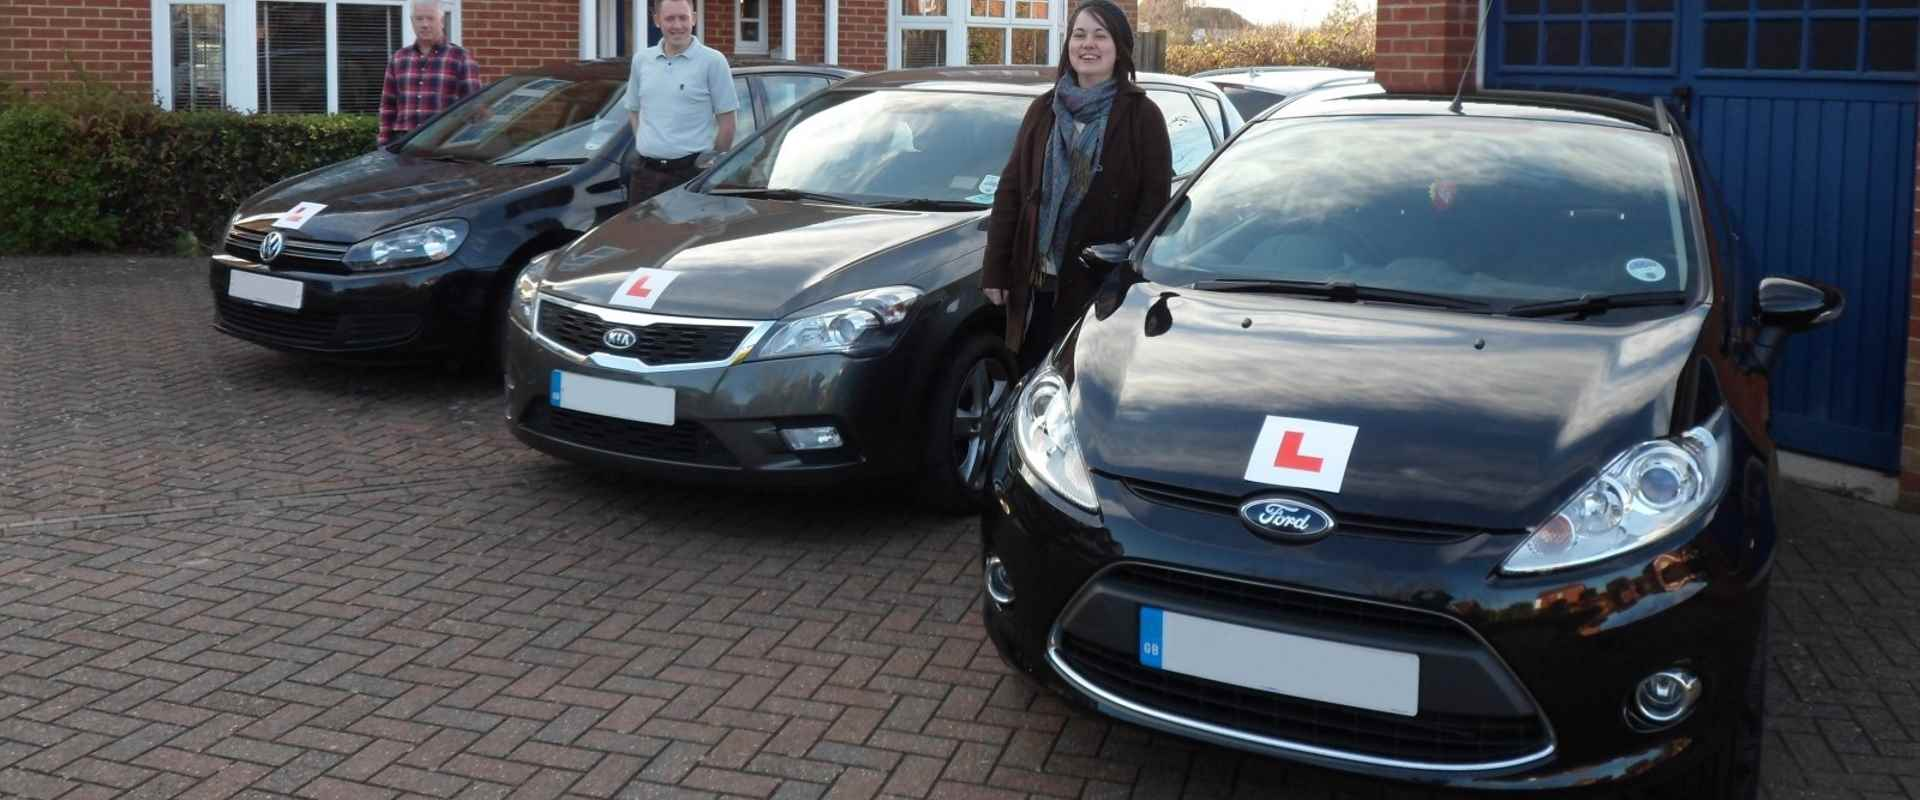 Kent Intensive Driving School